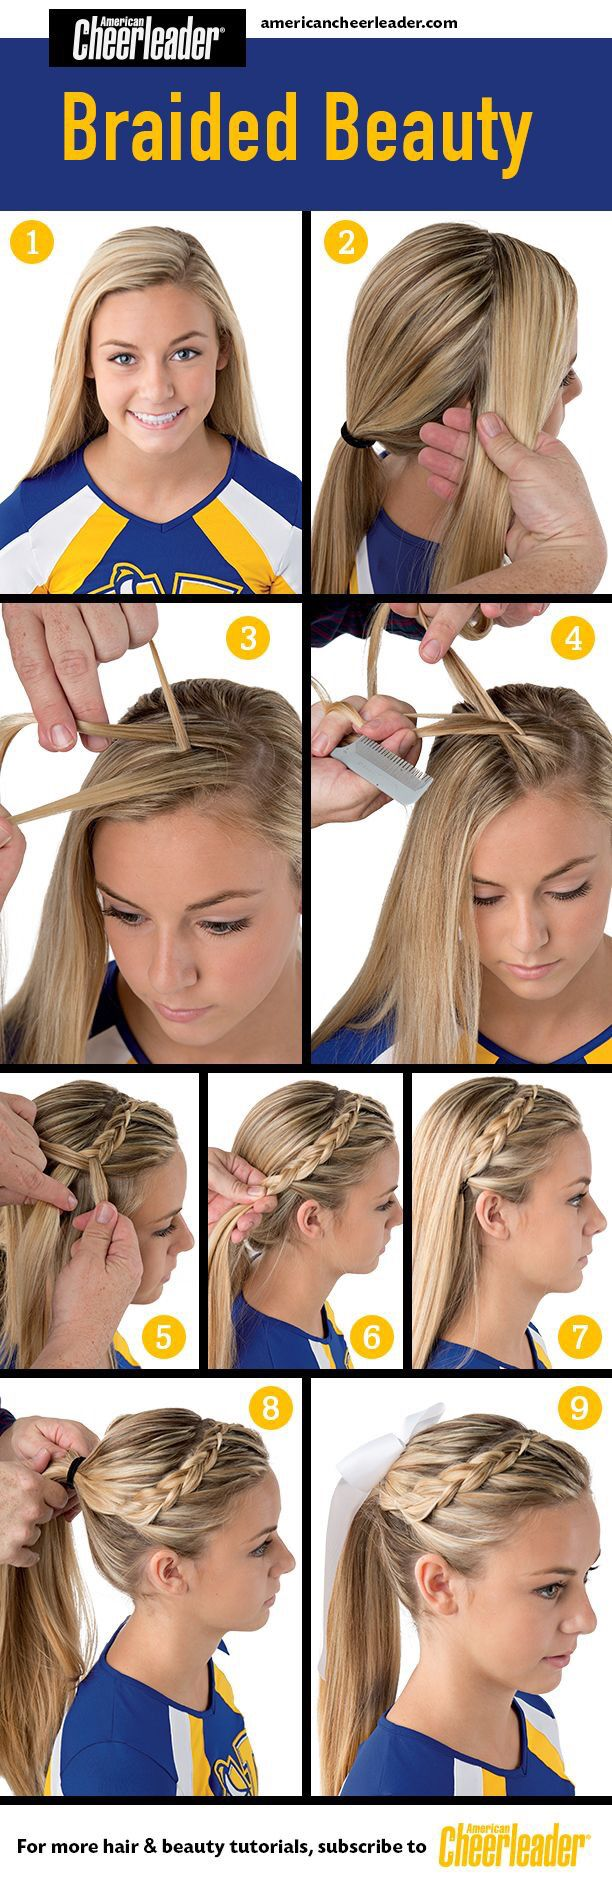 best images about hair on pinterest unique braided hairstyles